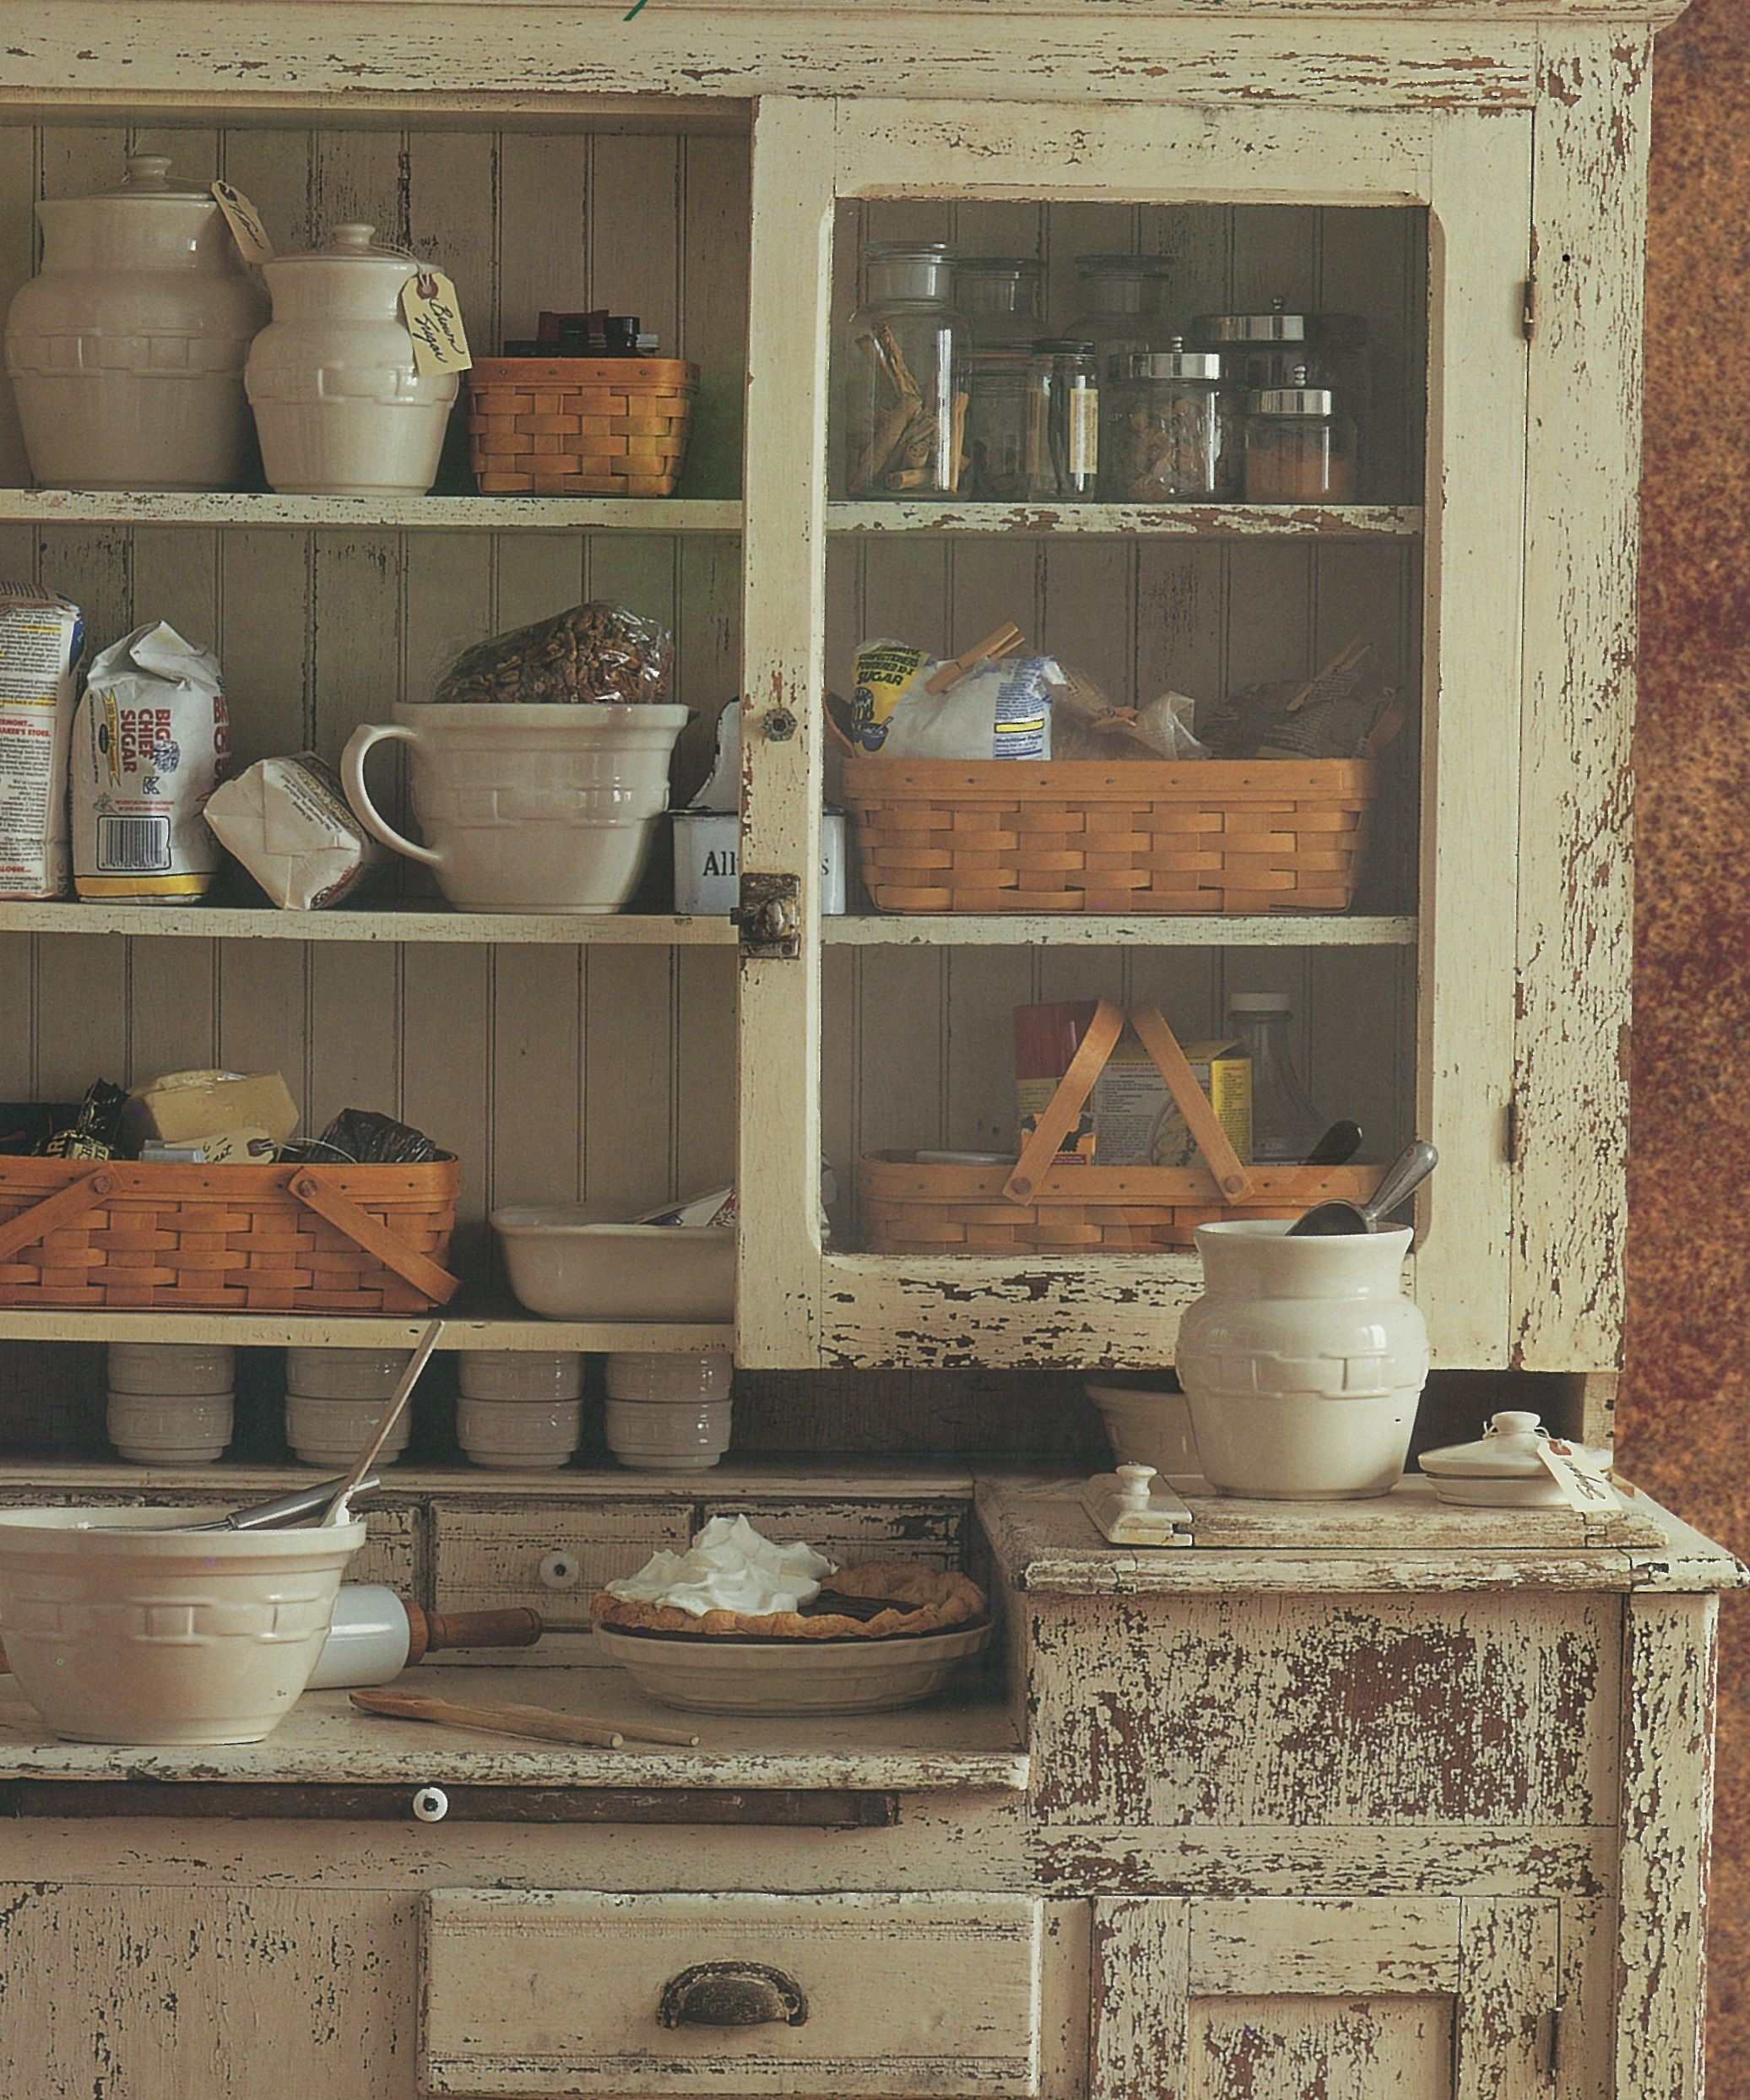 35 Kitchen Ideas Decor And Decorating Ideas For Kitchen: Longaberger Has Everything You Need For The Kitchen